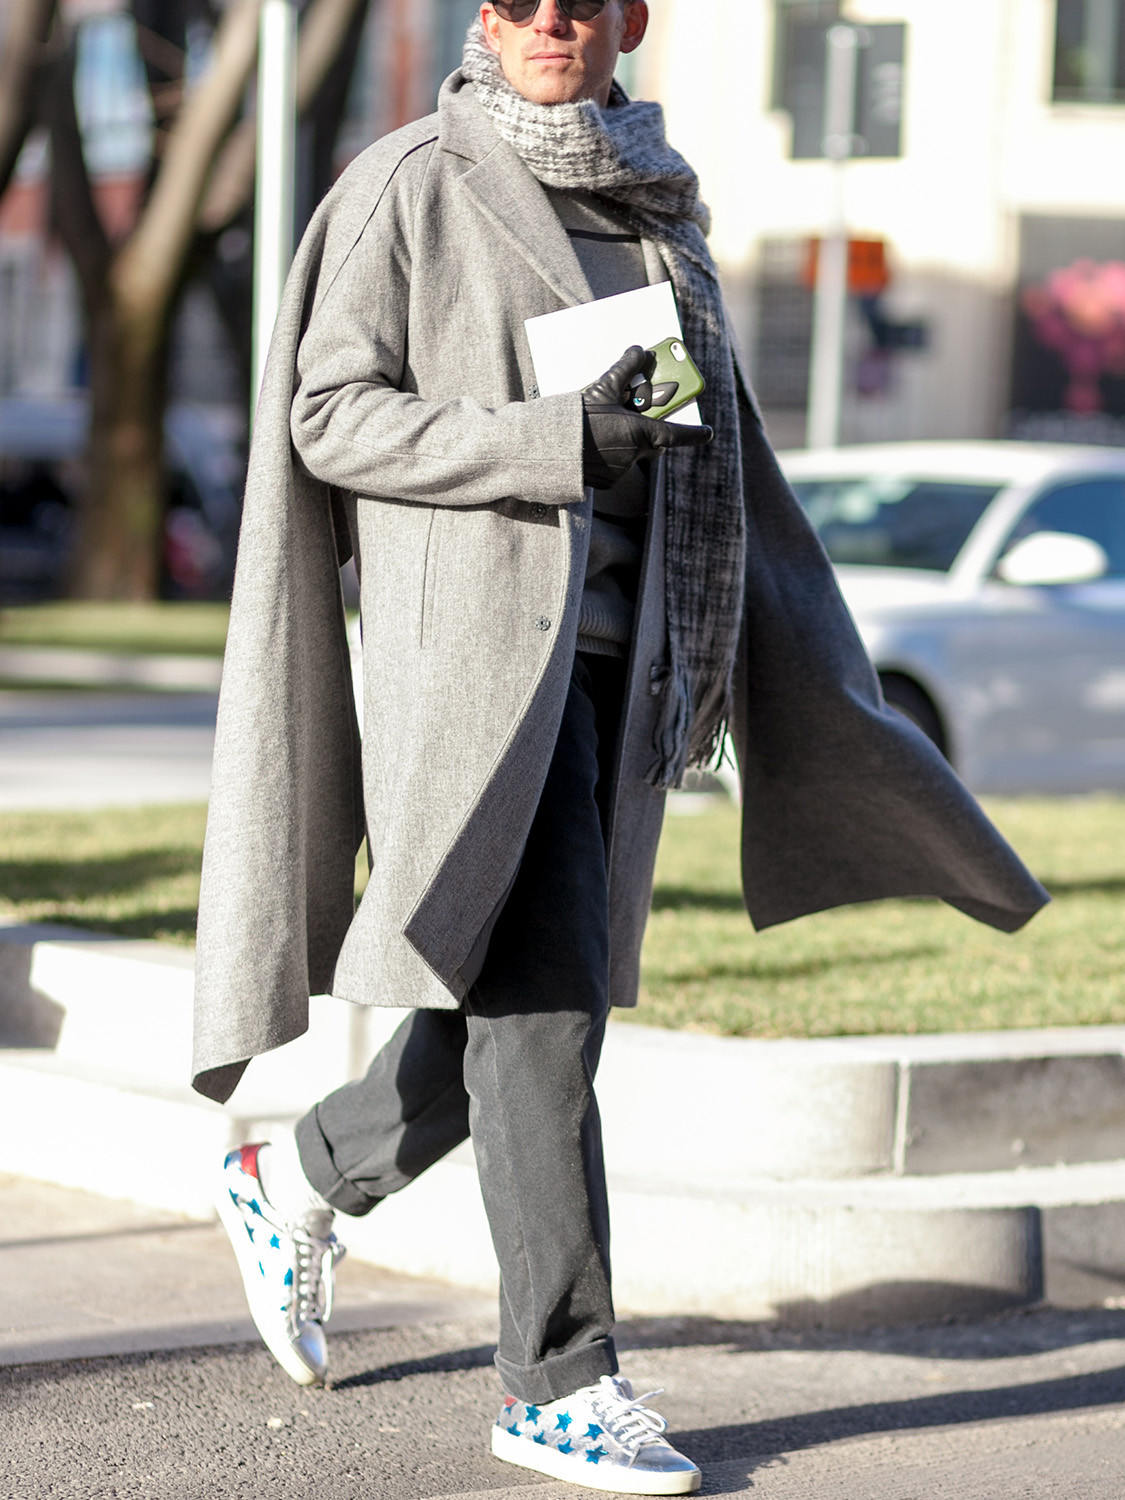 Men's outfit idea for 2021 with neutral double-breasted overcoat, gray sweatshirt, grey chinos, grey plain knitted scarf. Suitable for fall and winter.